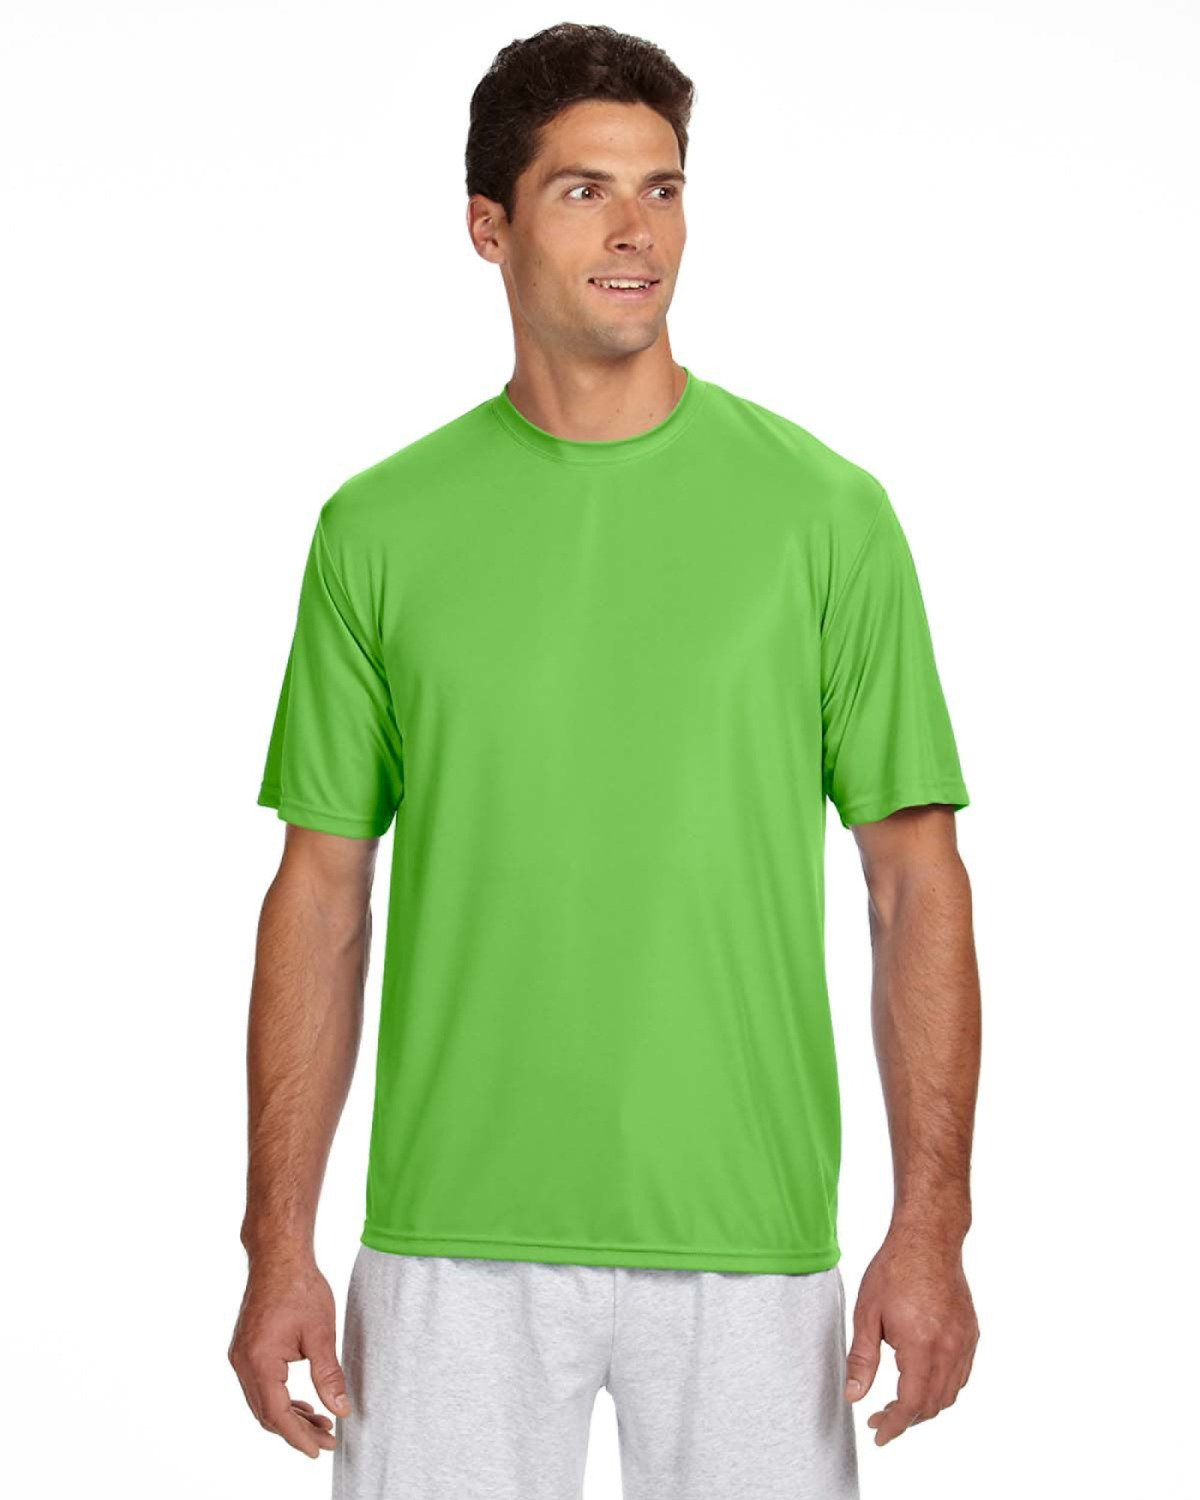 A4 Men's Cooling Performance T-Shirt LIME